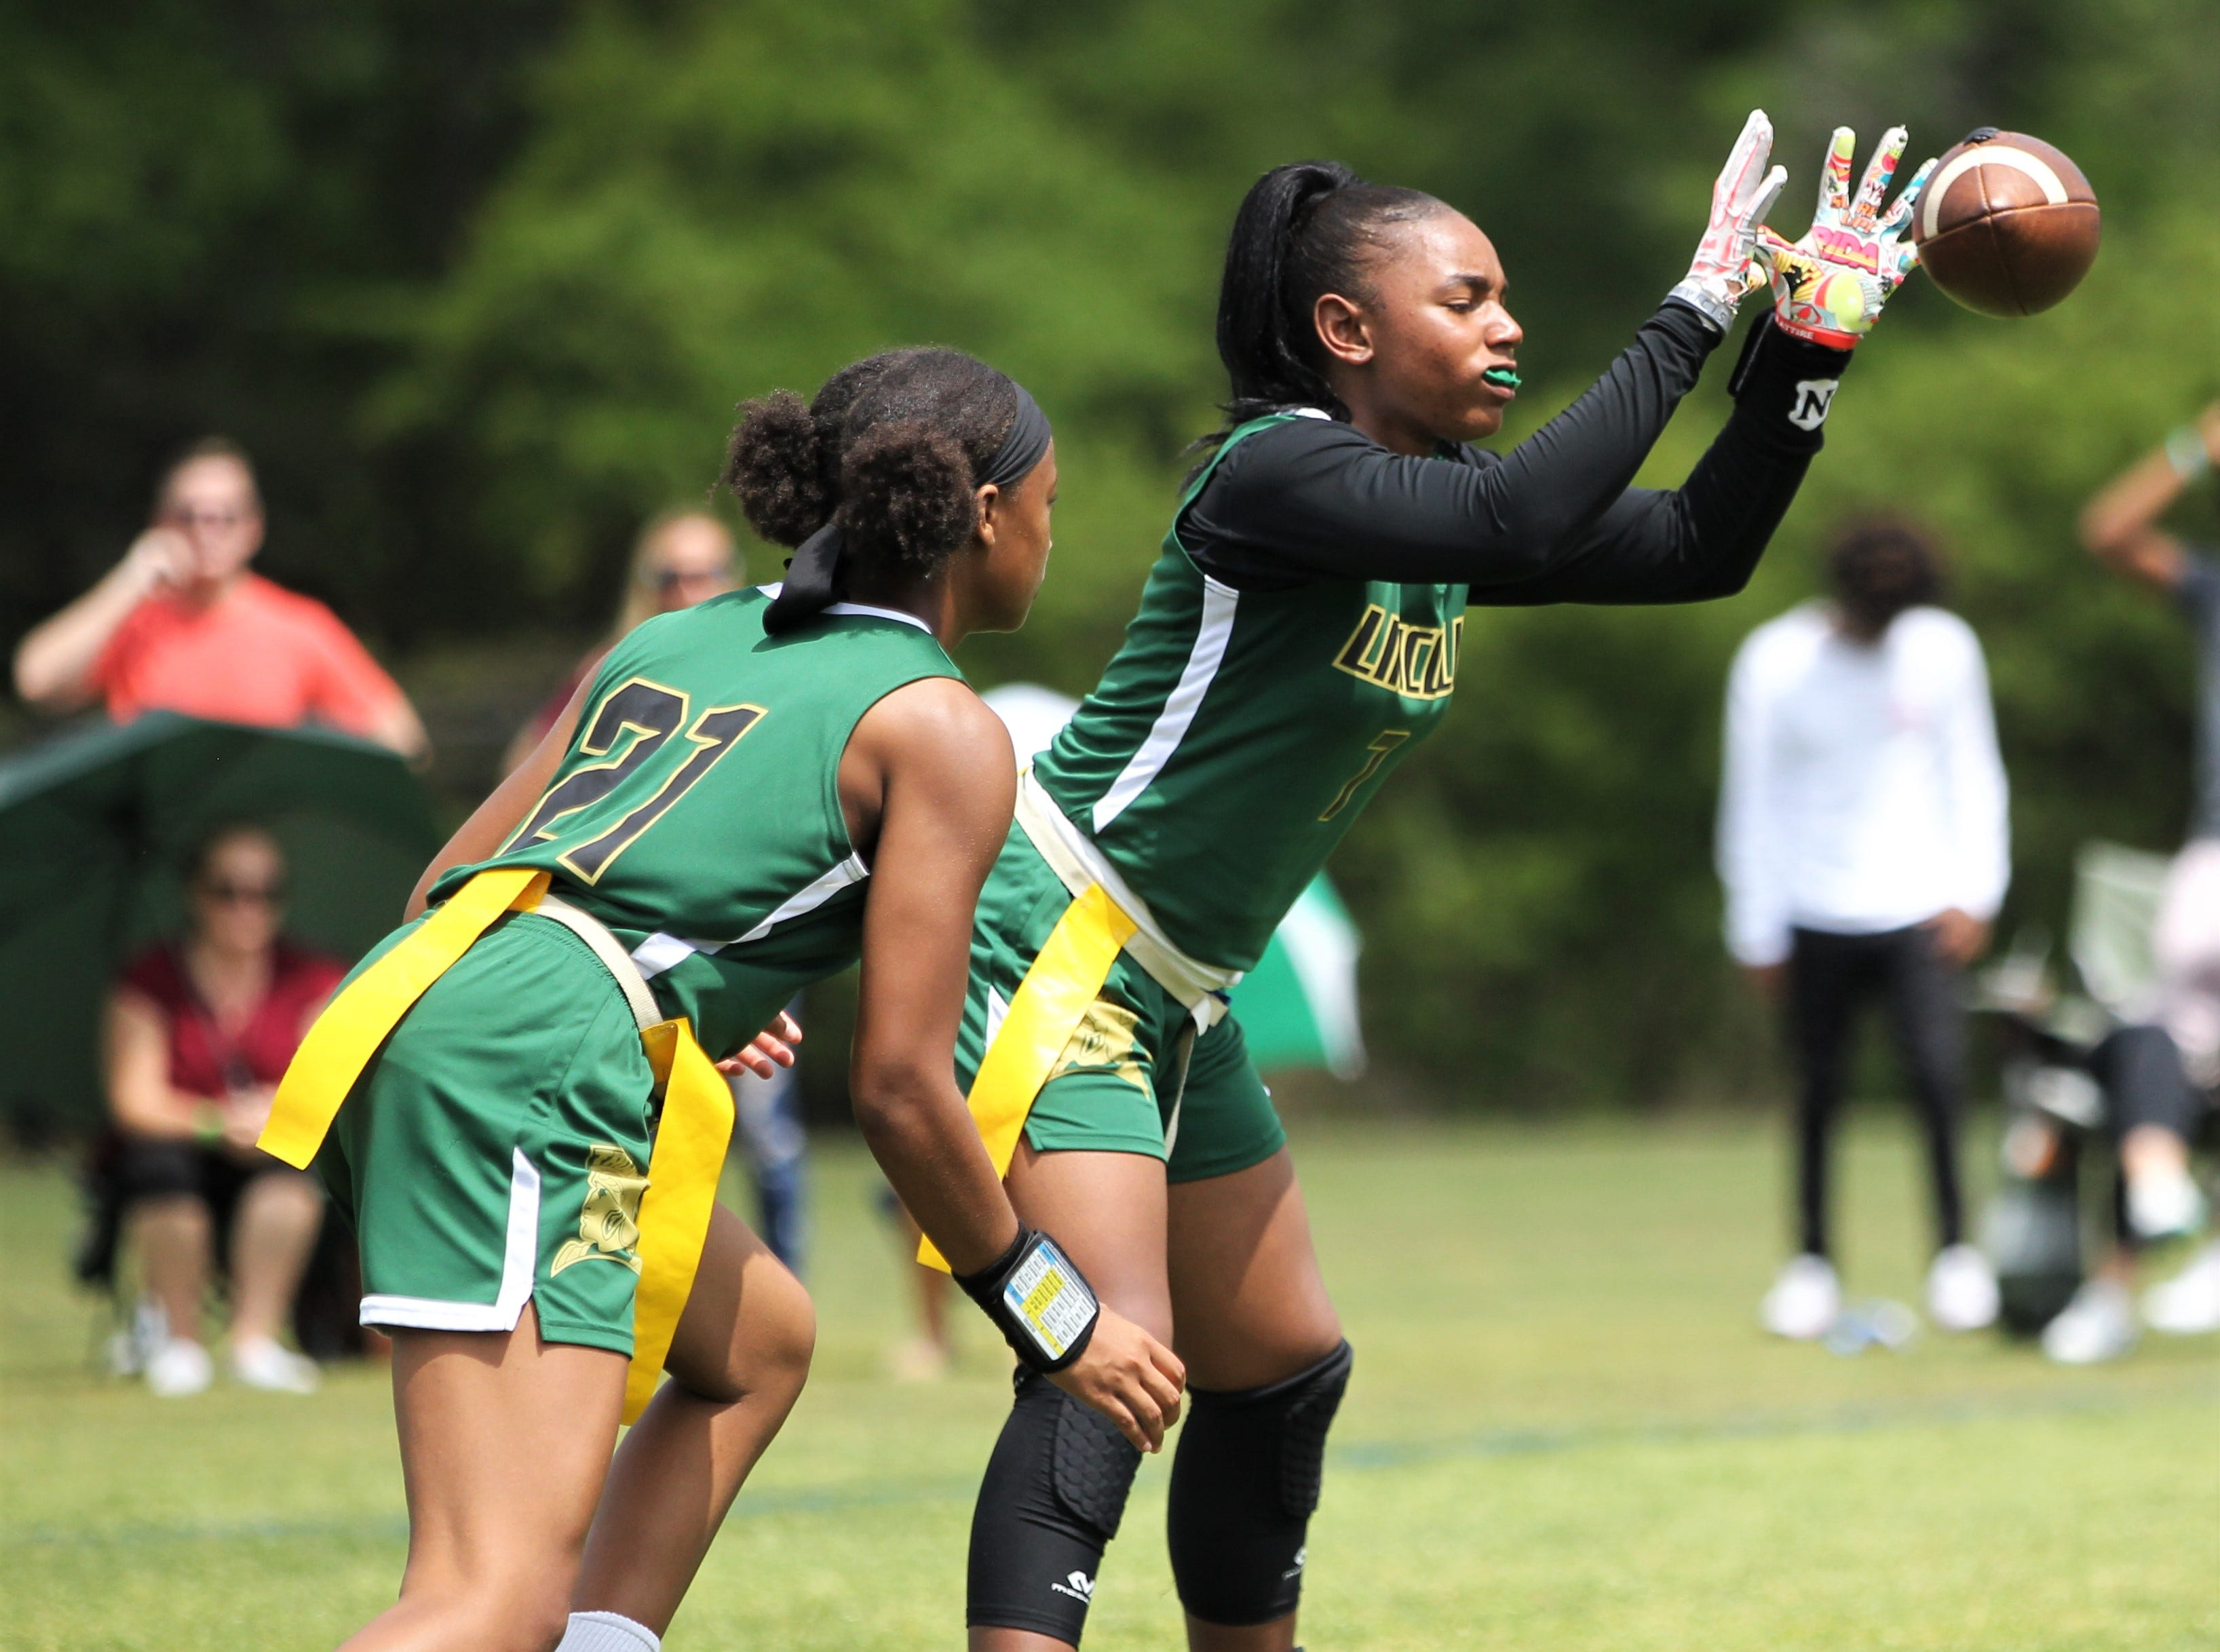 Lincoln's Erin Turral receives a snap during the 2019 Capital City Classic flag football tournament at the FSU Rec SportsPlex on April 6, 2019.